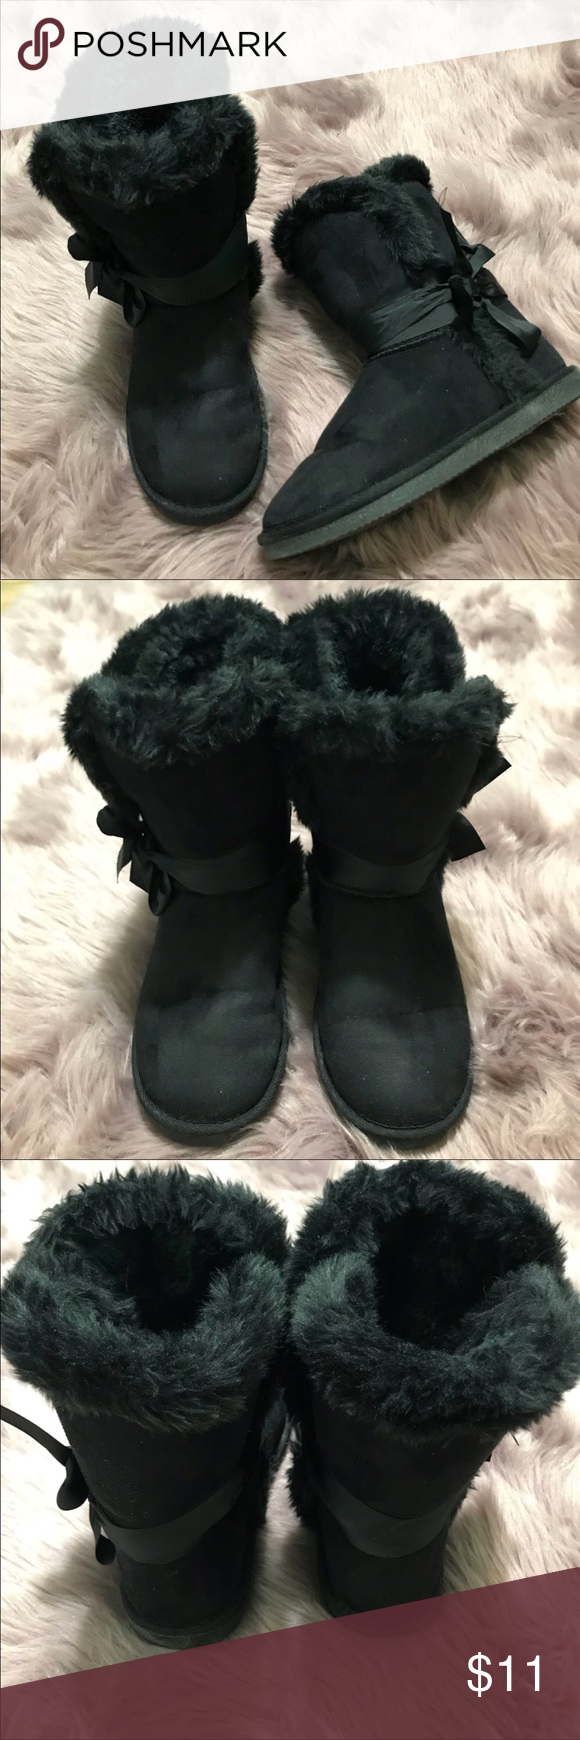 Black Suede Winter Boots 🔴 Reasonable offers always welcome. JustFab Shoes Winter & Rain Boots